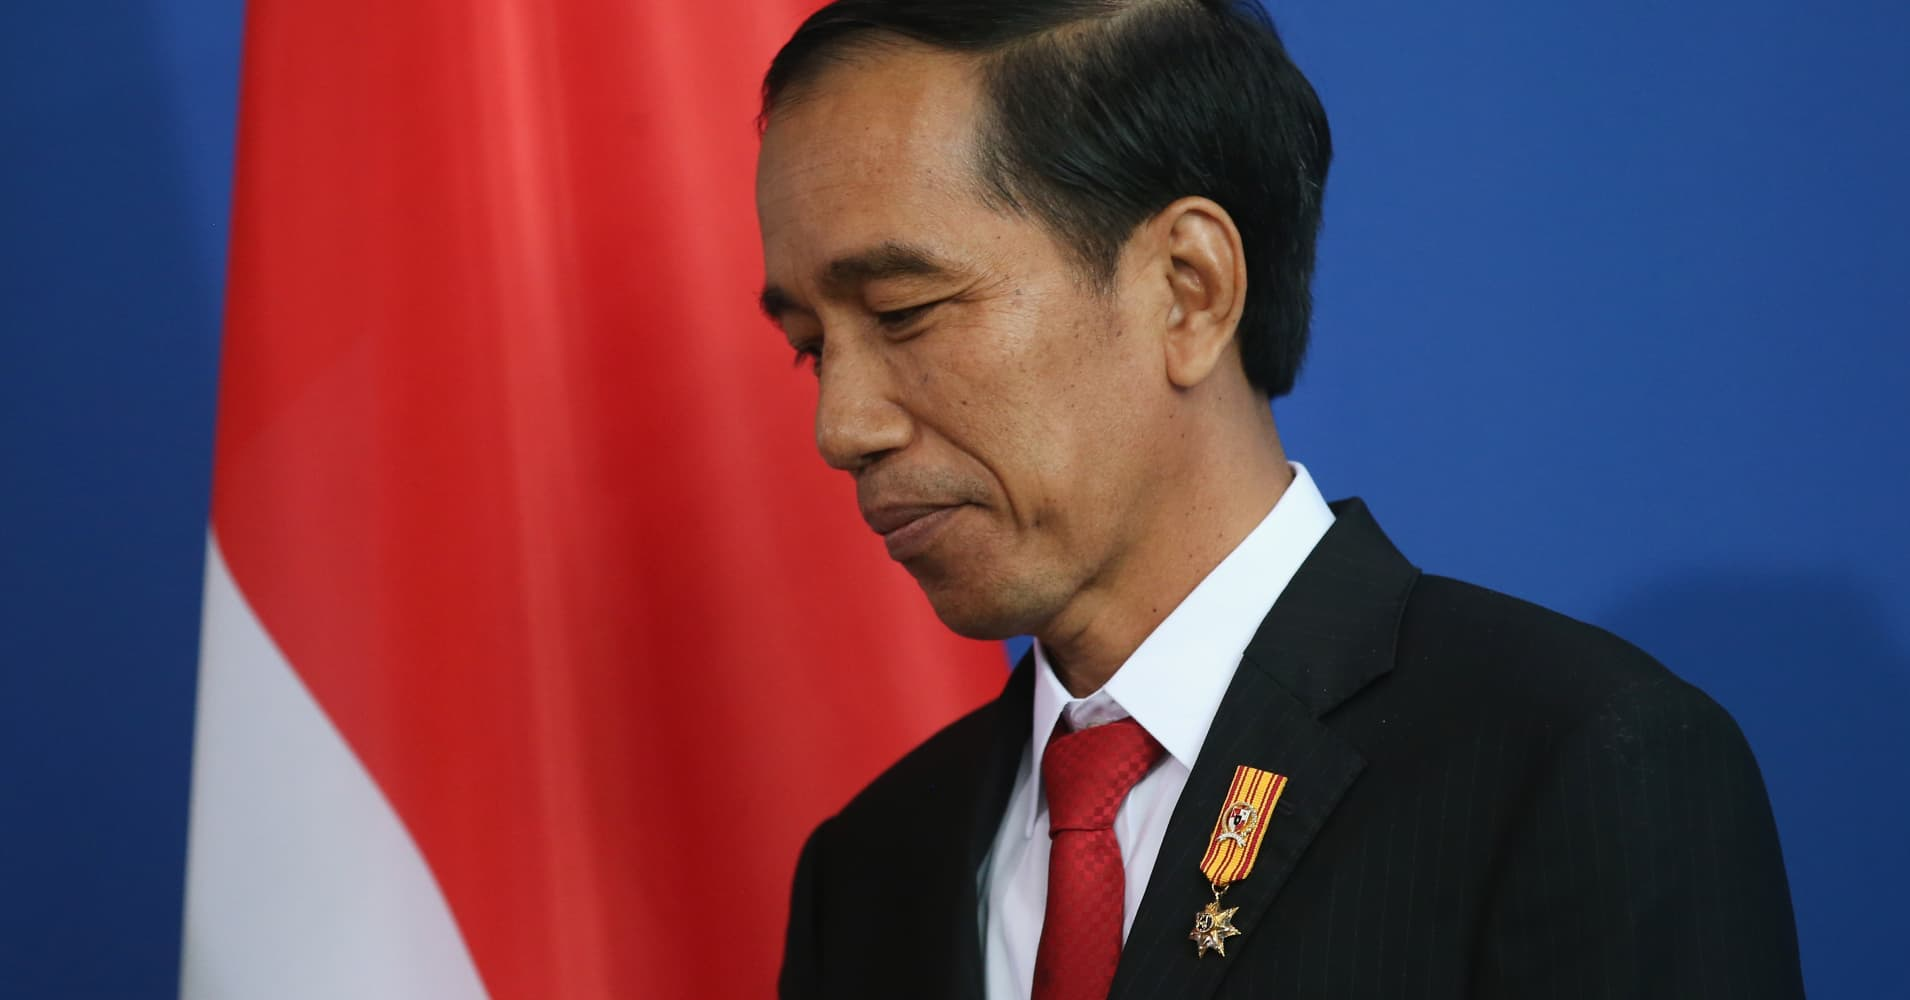 Indonesian President Jokowi Celebrates 2 Years In Office With An Eye On 2019 Vote